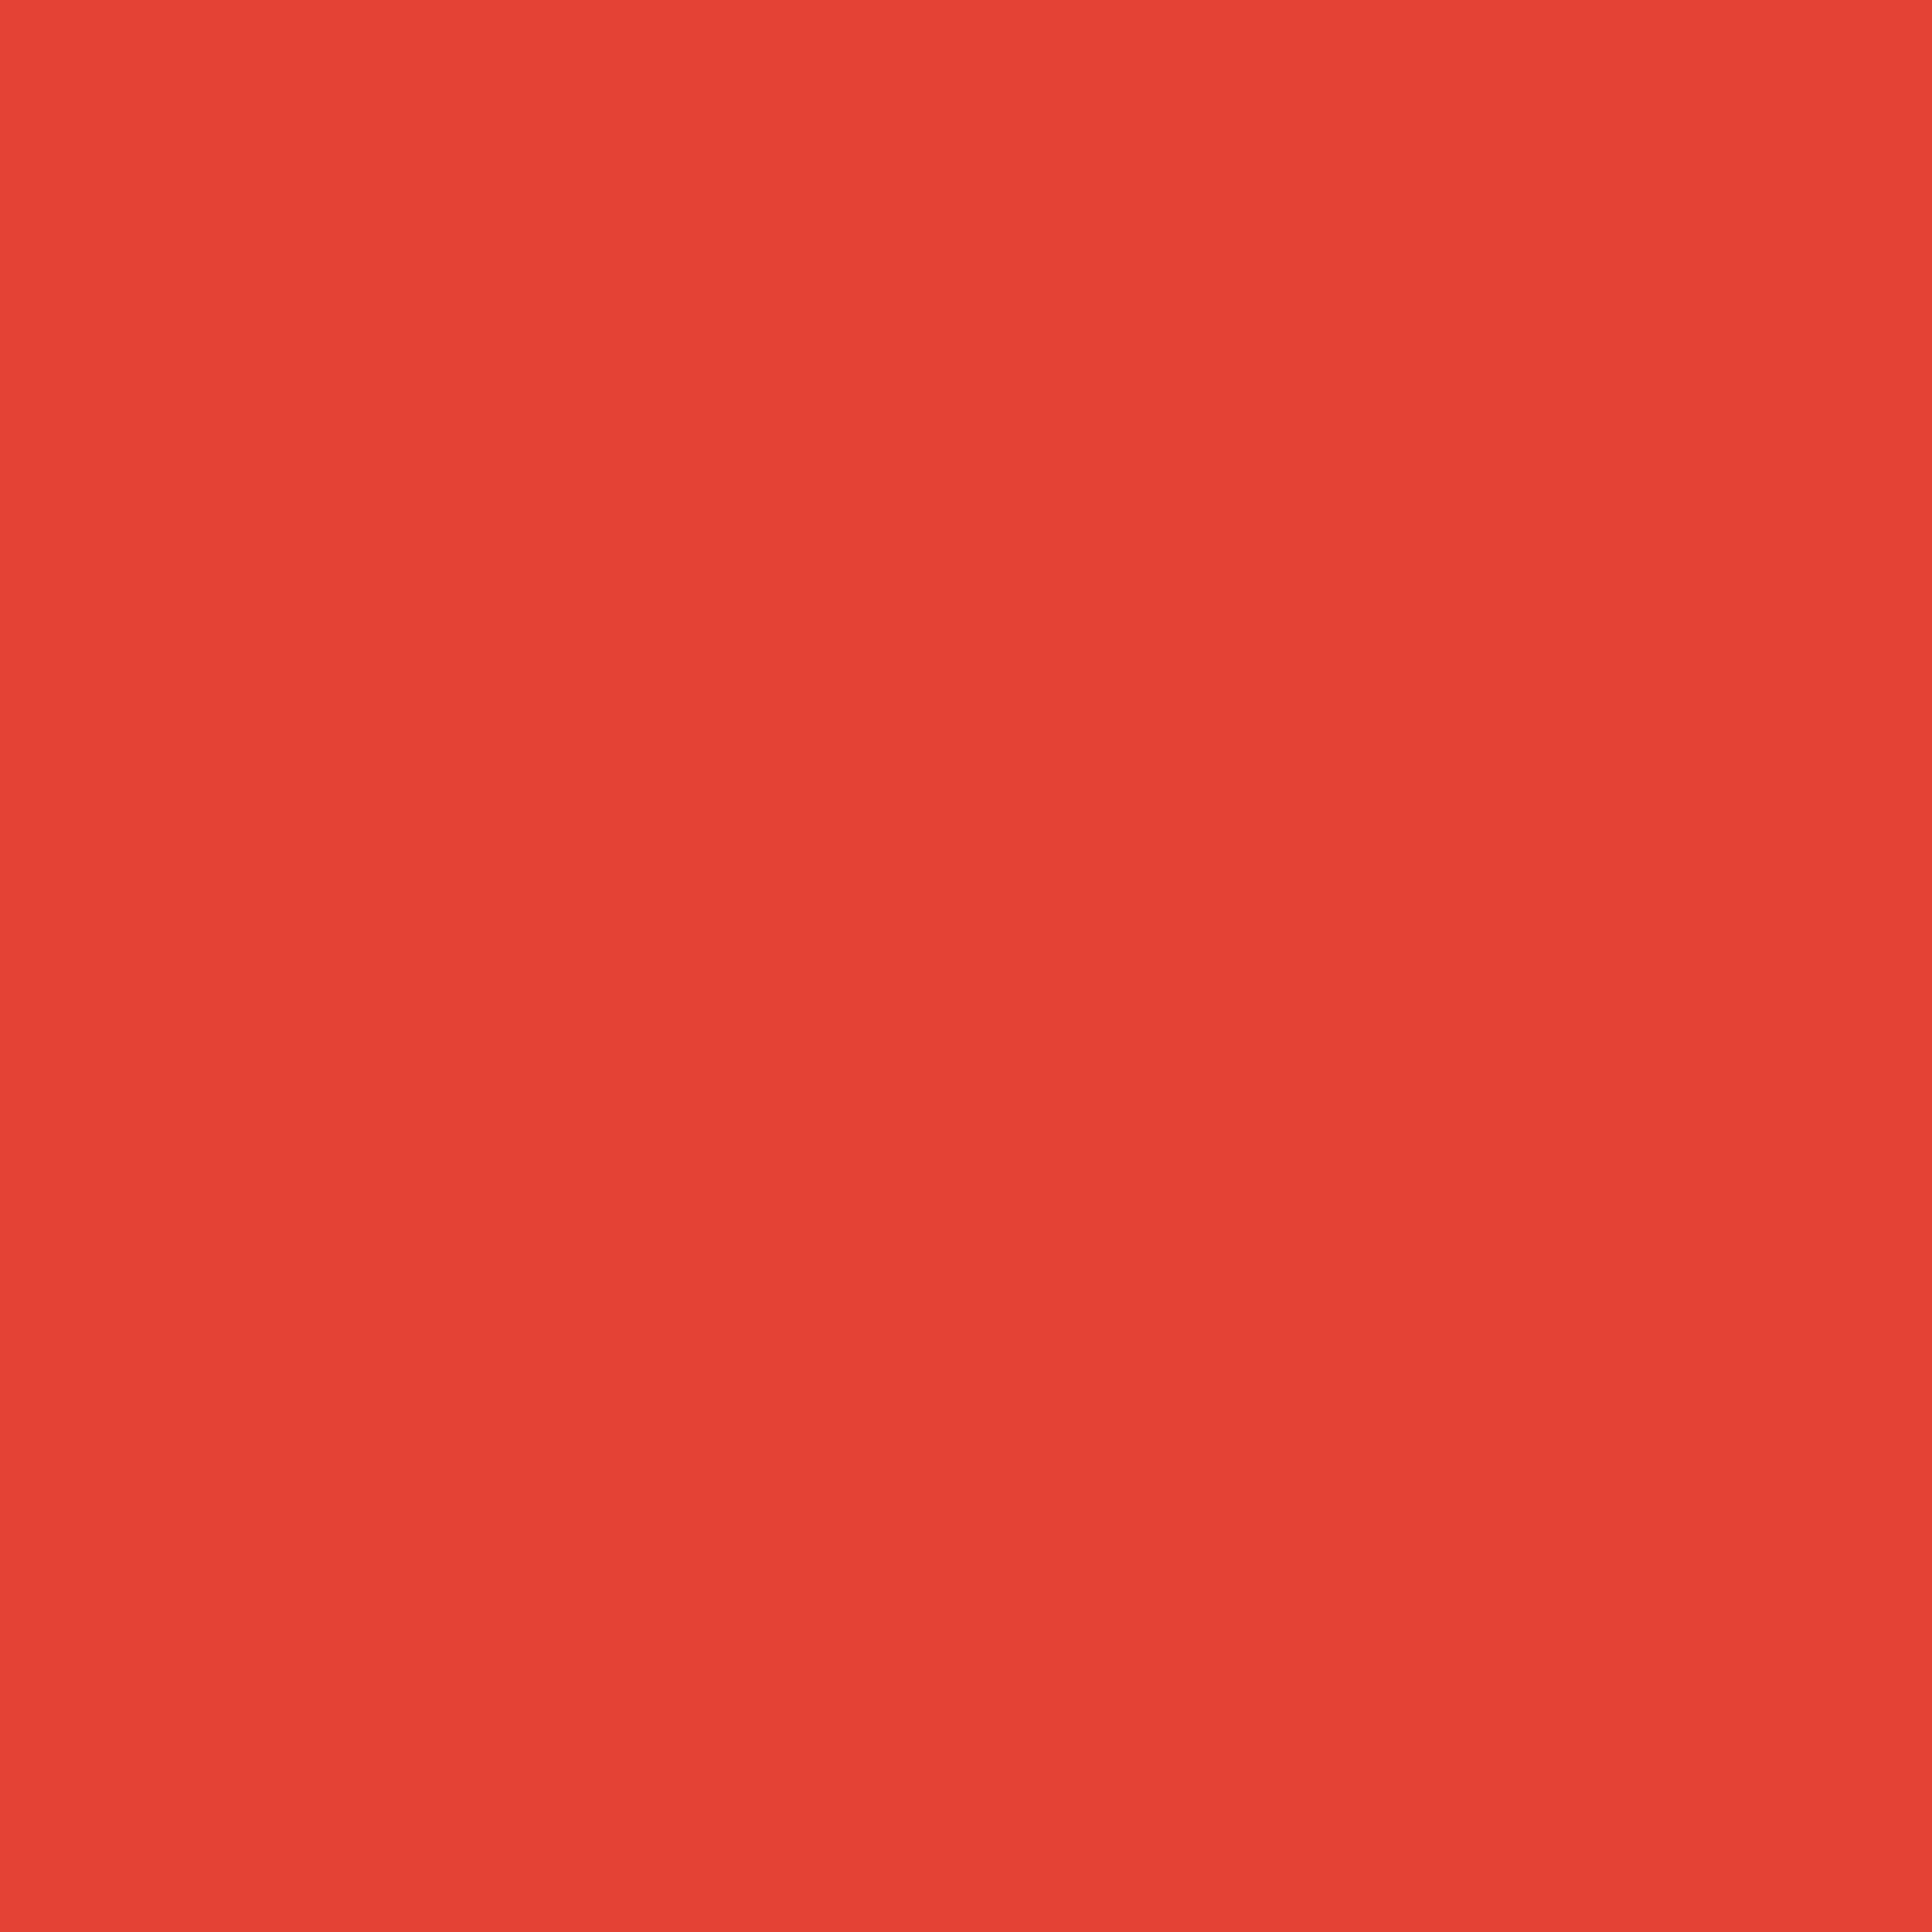 2732x2732 Cinnabar Solid Color Background